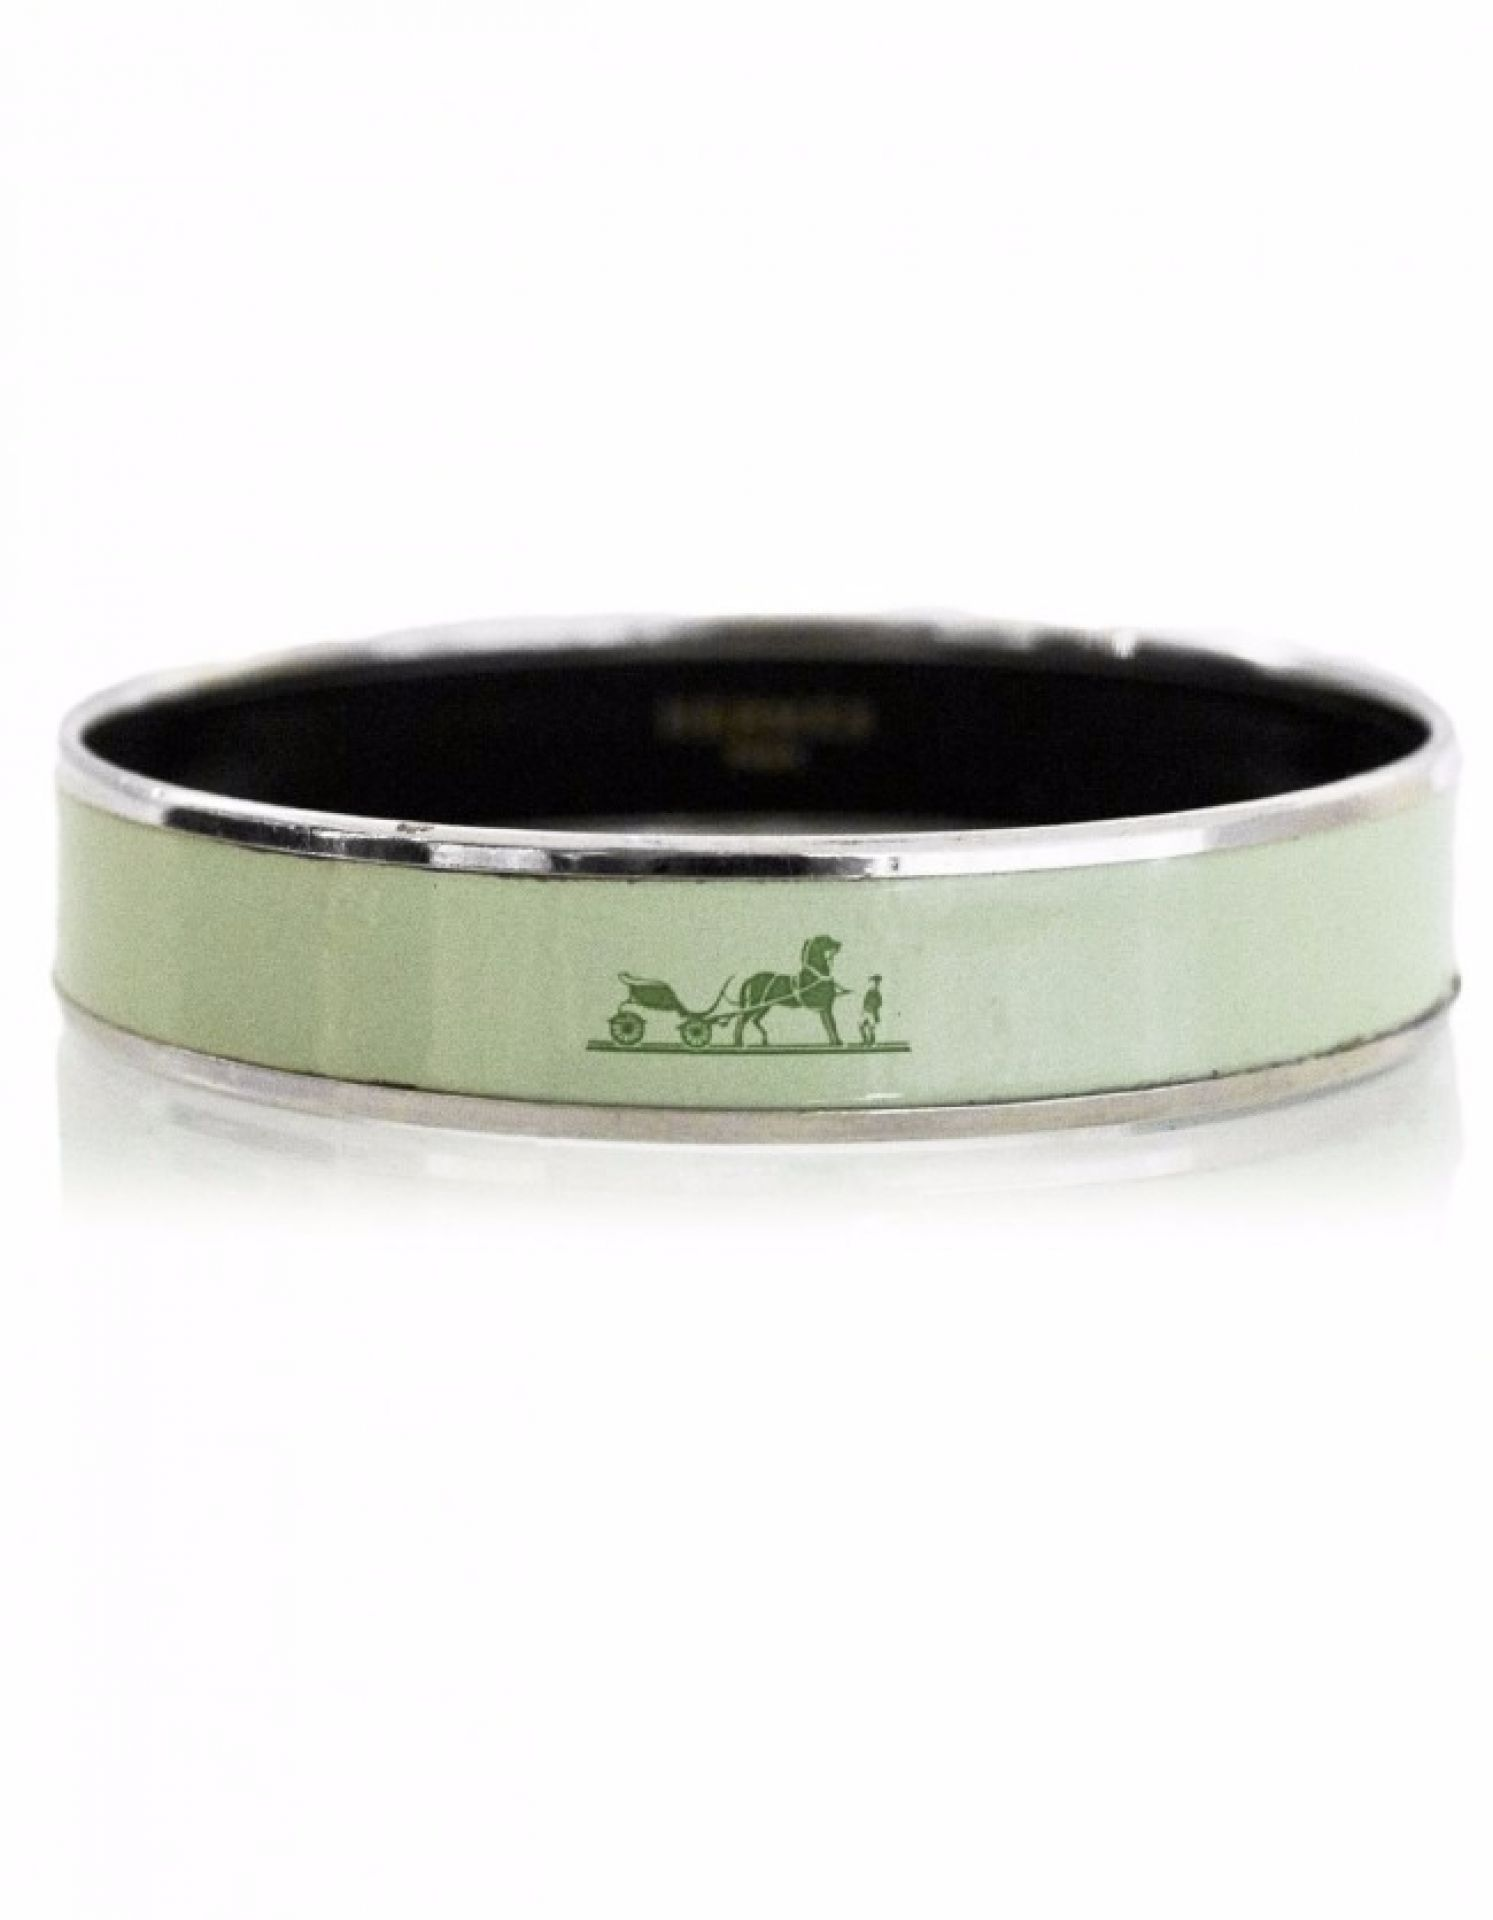 Hermes Green Medium Calache Enamel Bangle Sz 65